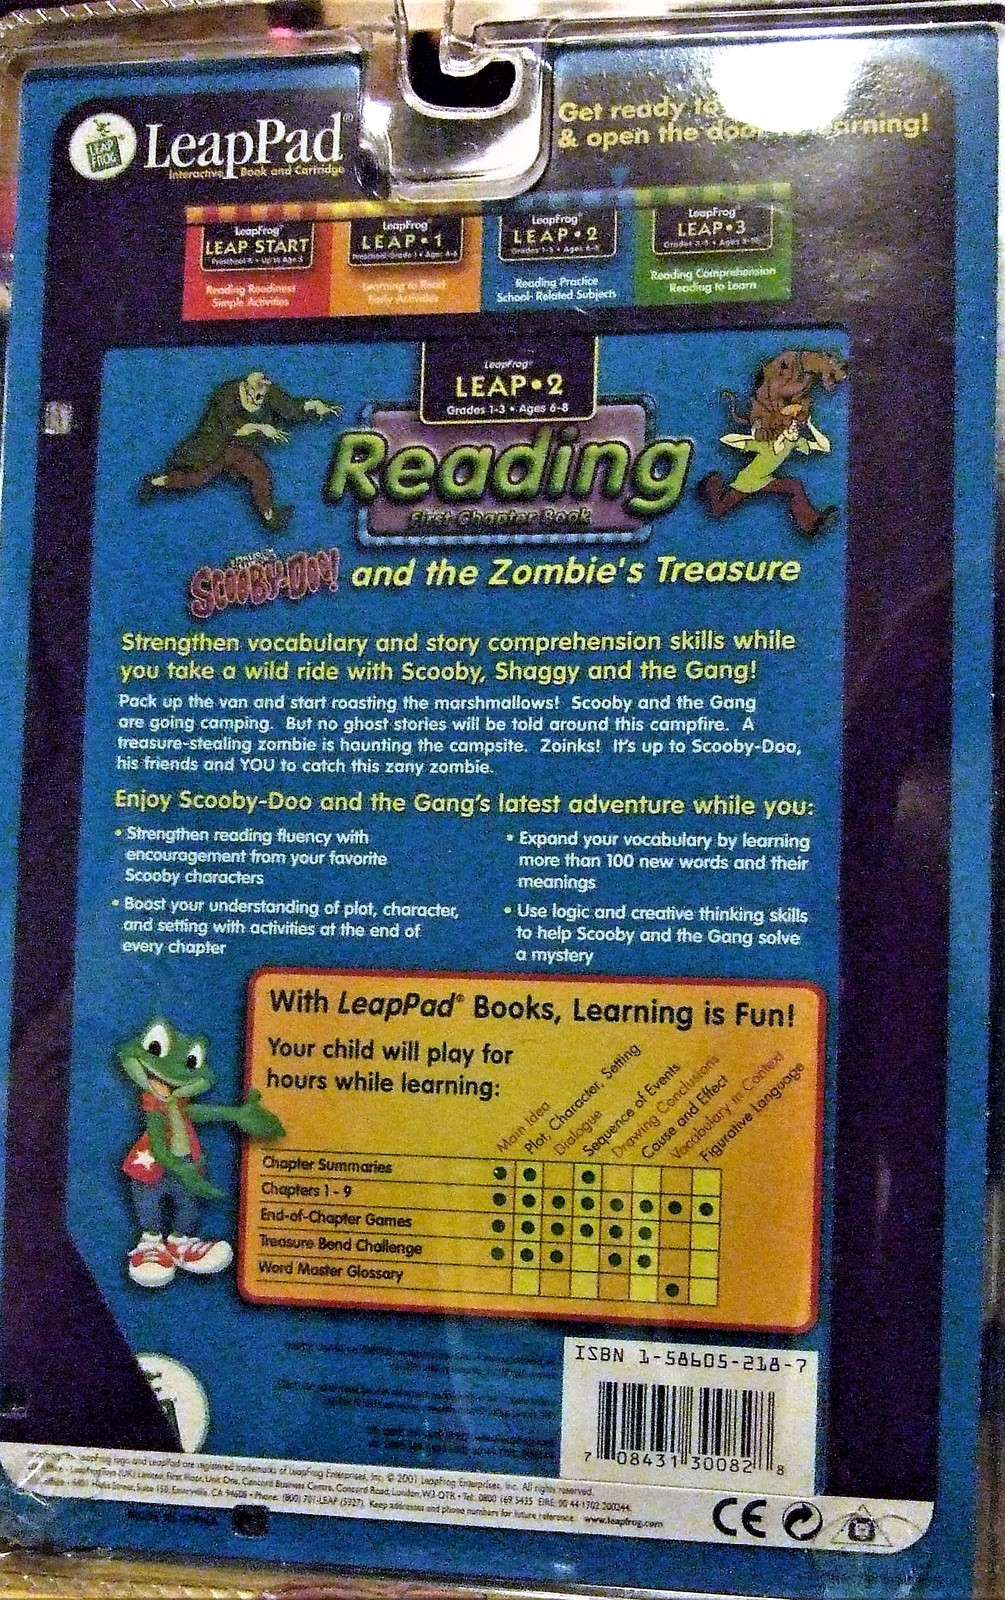 "LeapFrog Leap 2 ""Reading"" Scooby - Doo! and the Zombie's Treasure"